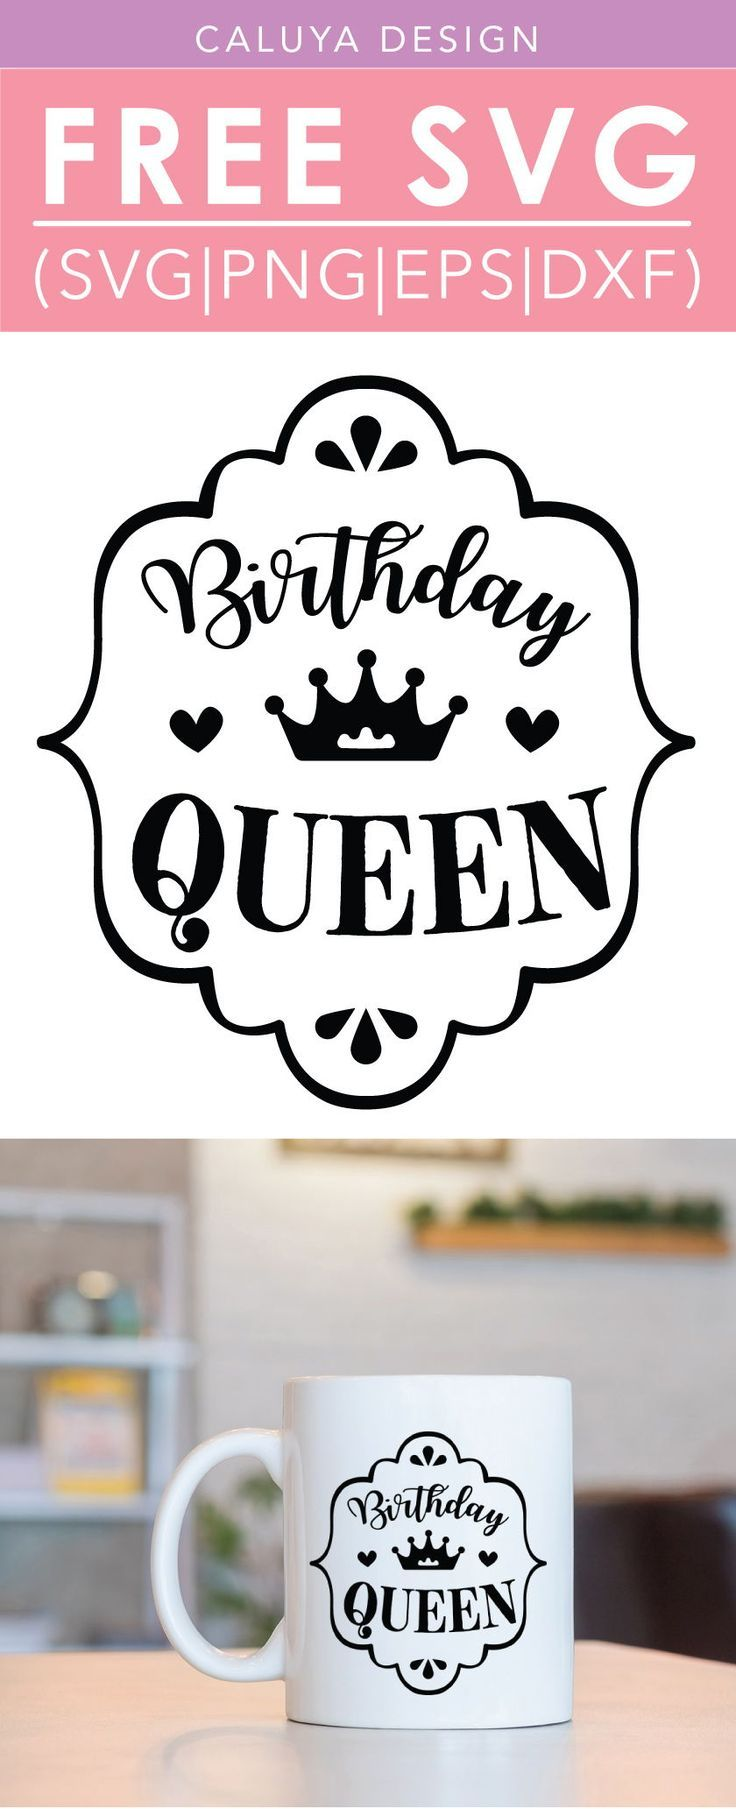 free birthday queen svg png eps  dxf cricut